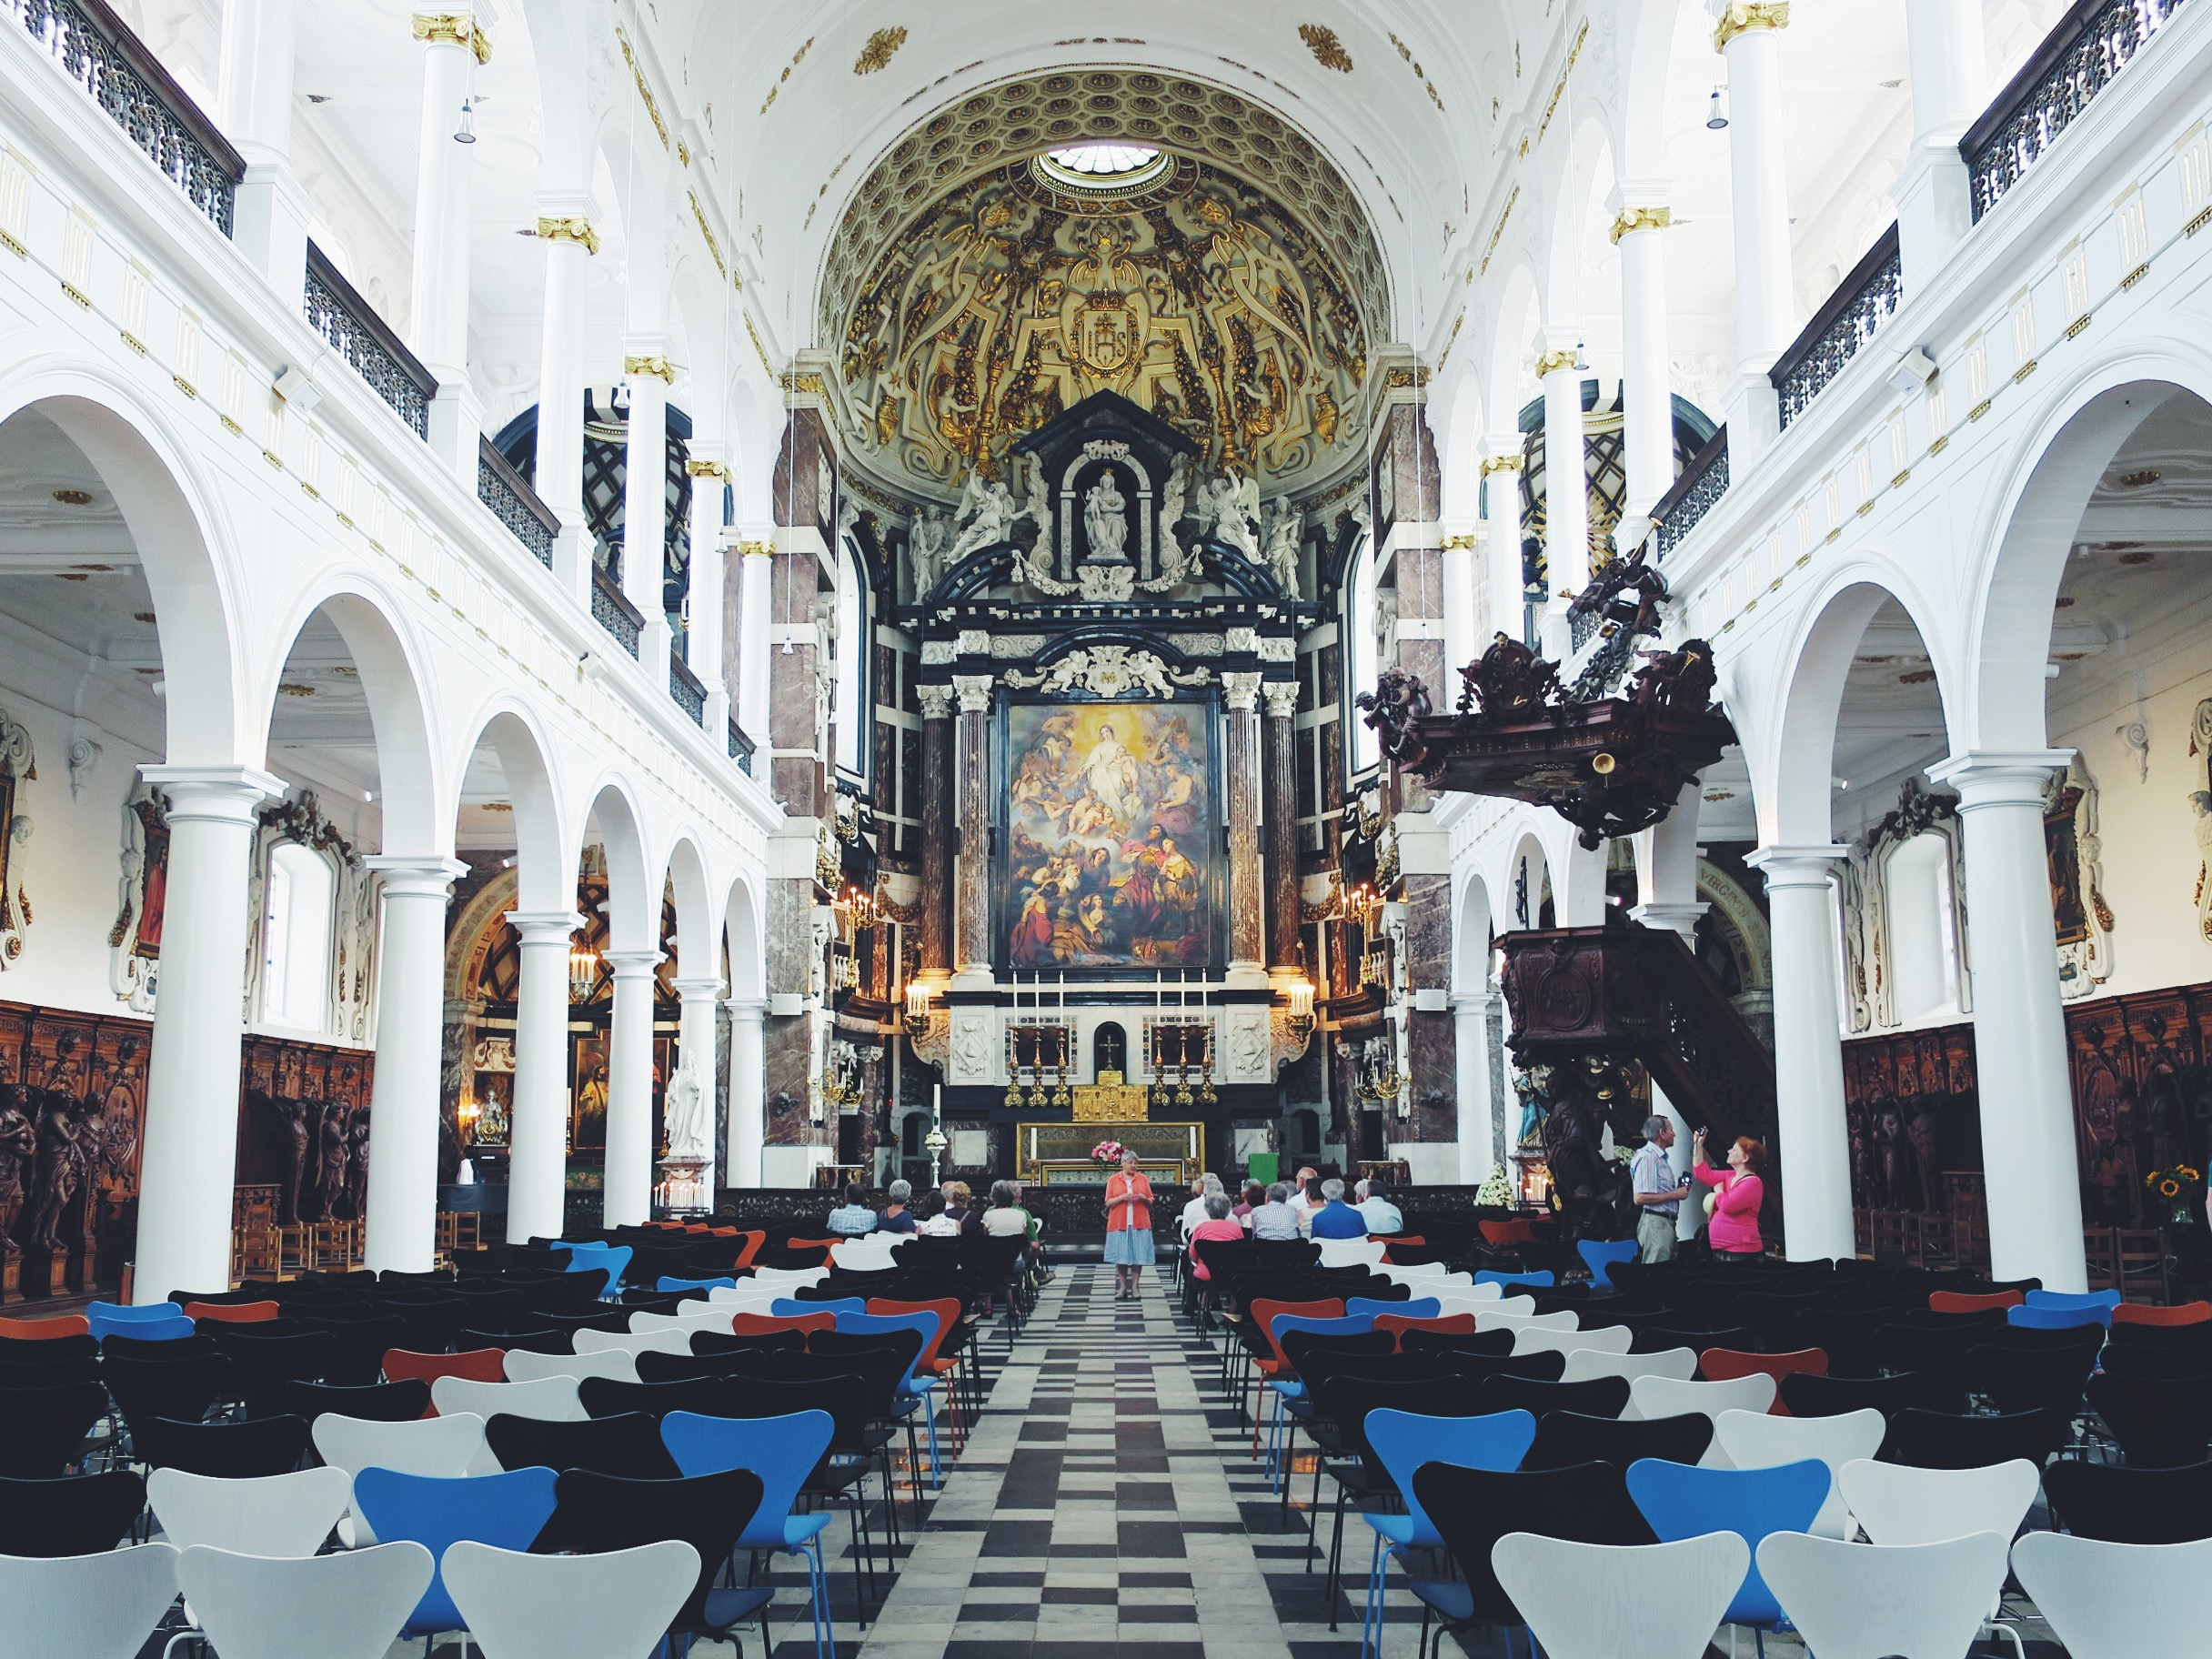 Inside the Sint-Carolus-Borromeuskerk